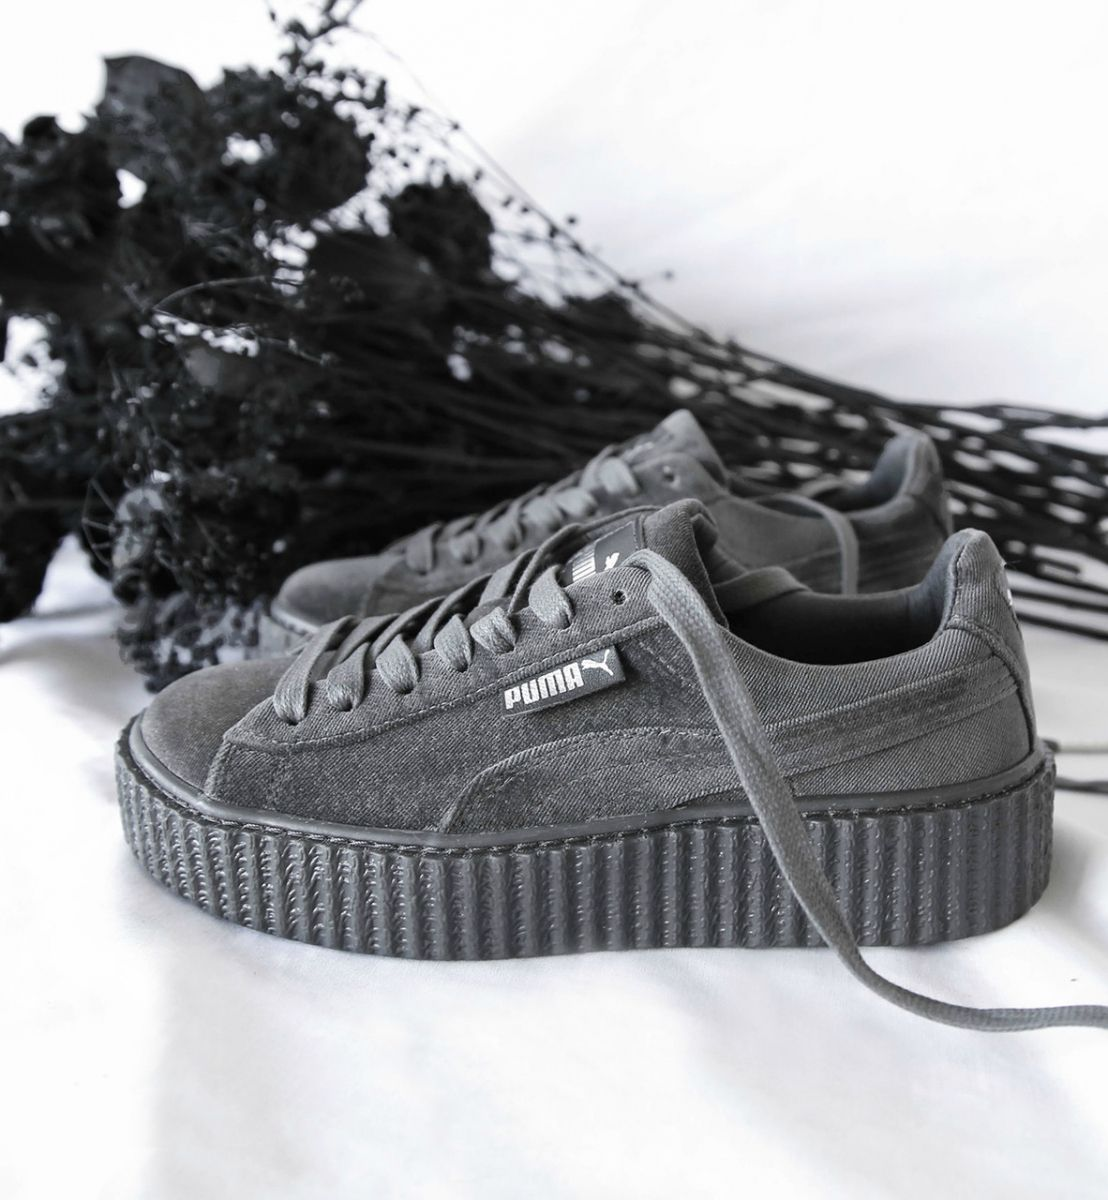 promo code 5e0e2 a81c8 pumashoes$29 on | Twinkle Toes in 2019 | Suede creepers ...